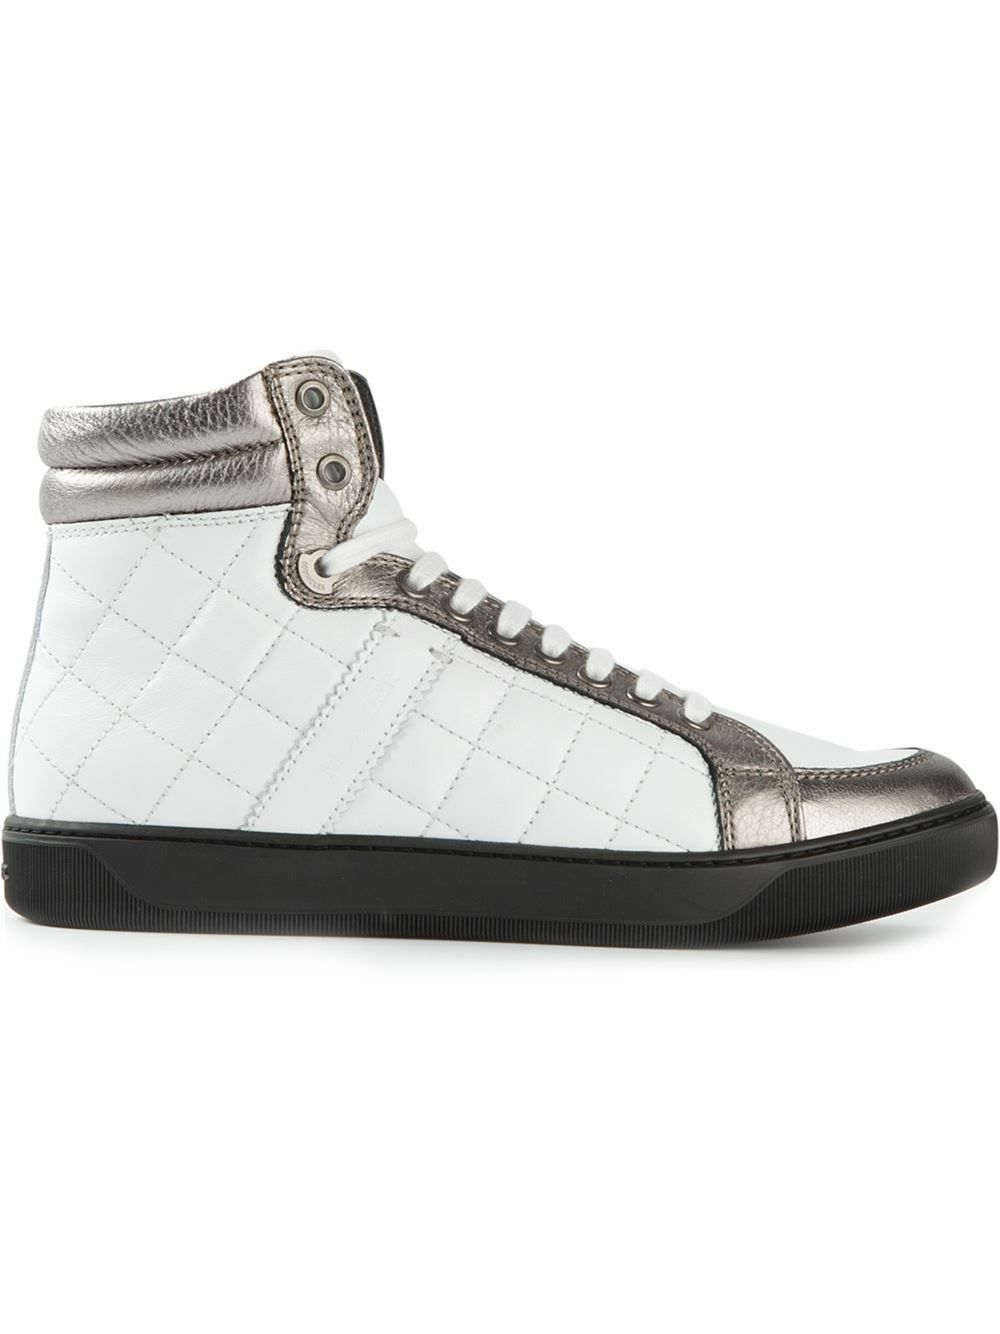 NW MONCLER boots sneakers quilted hi top New Bordeaux Trainers w  code.moncler